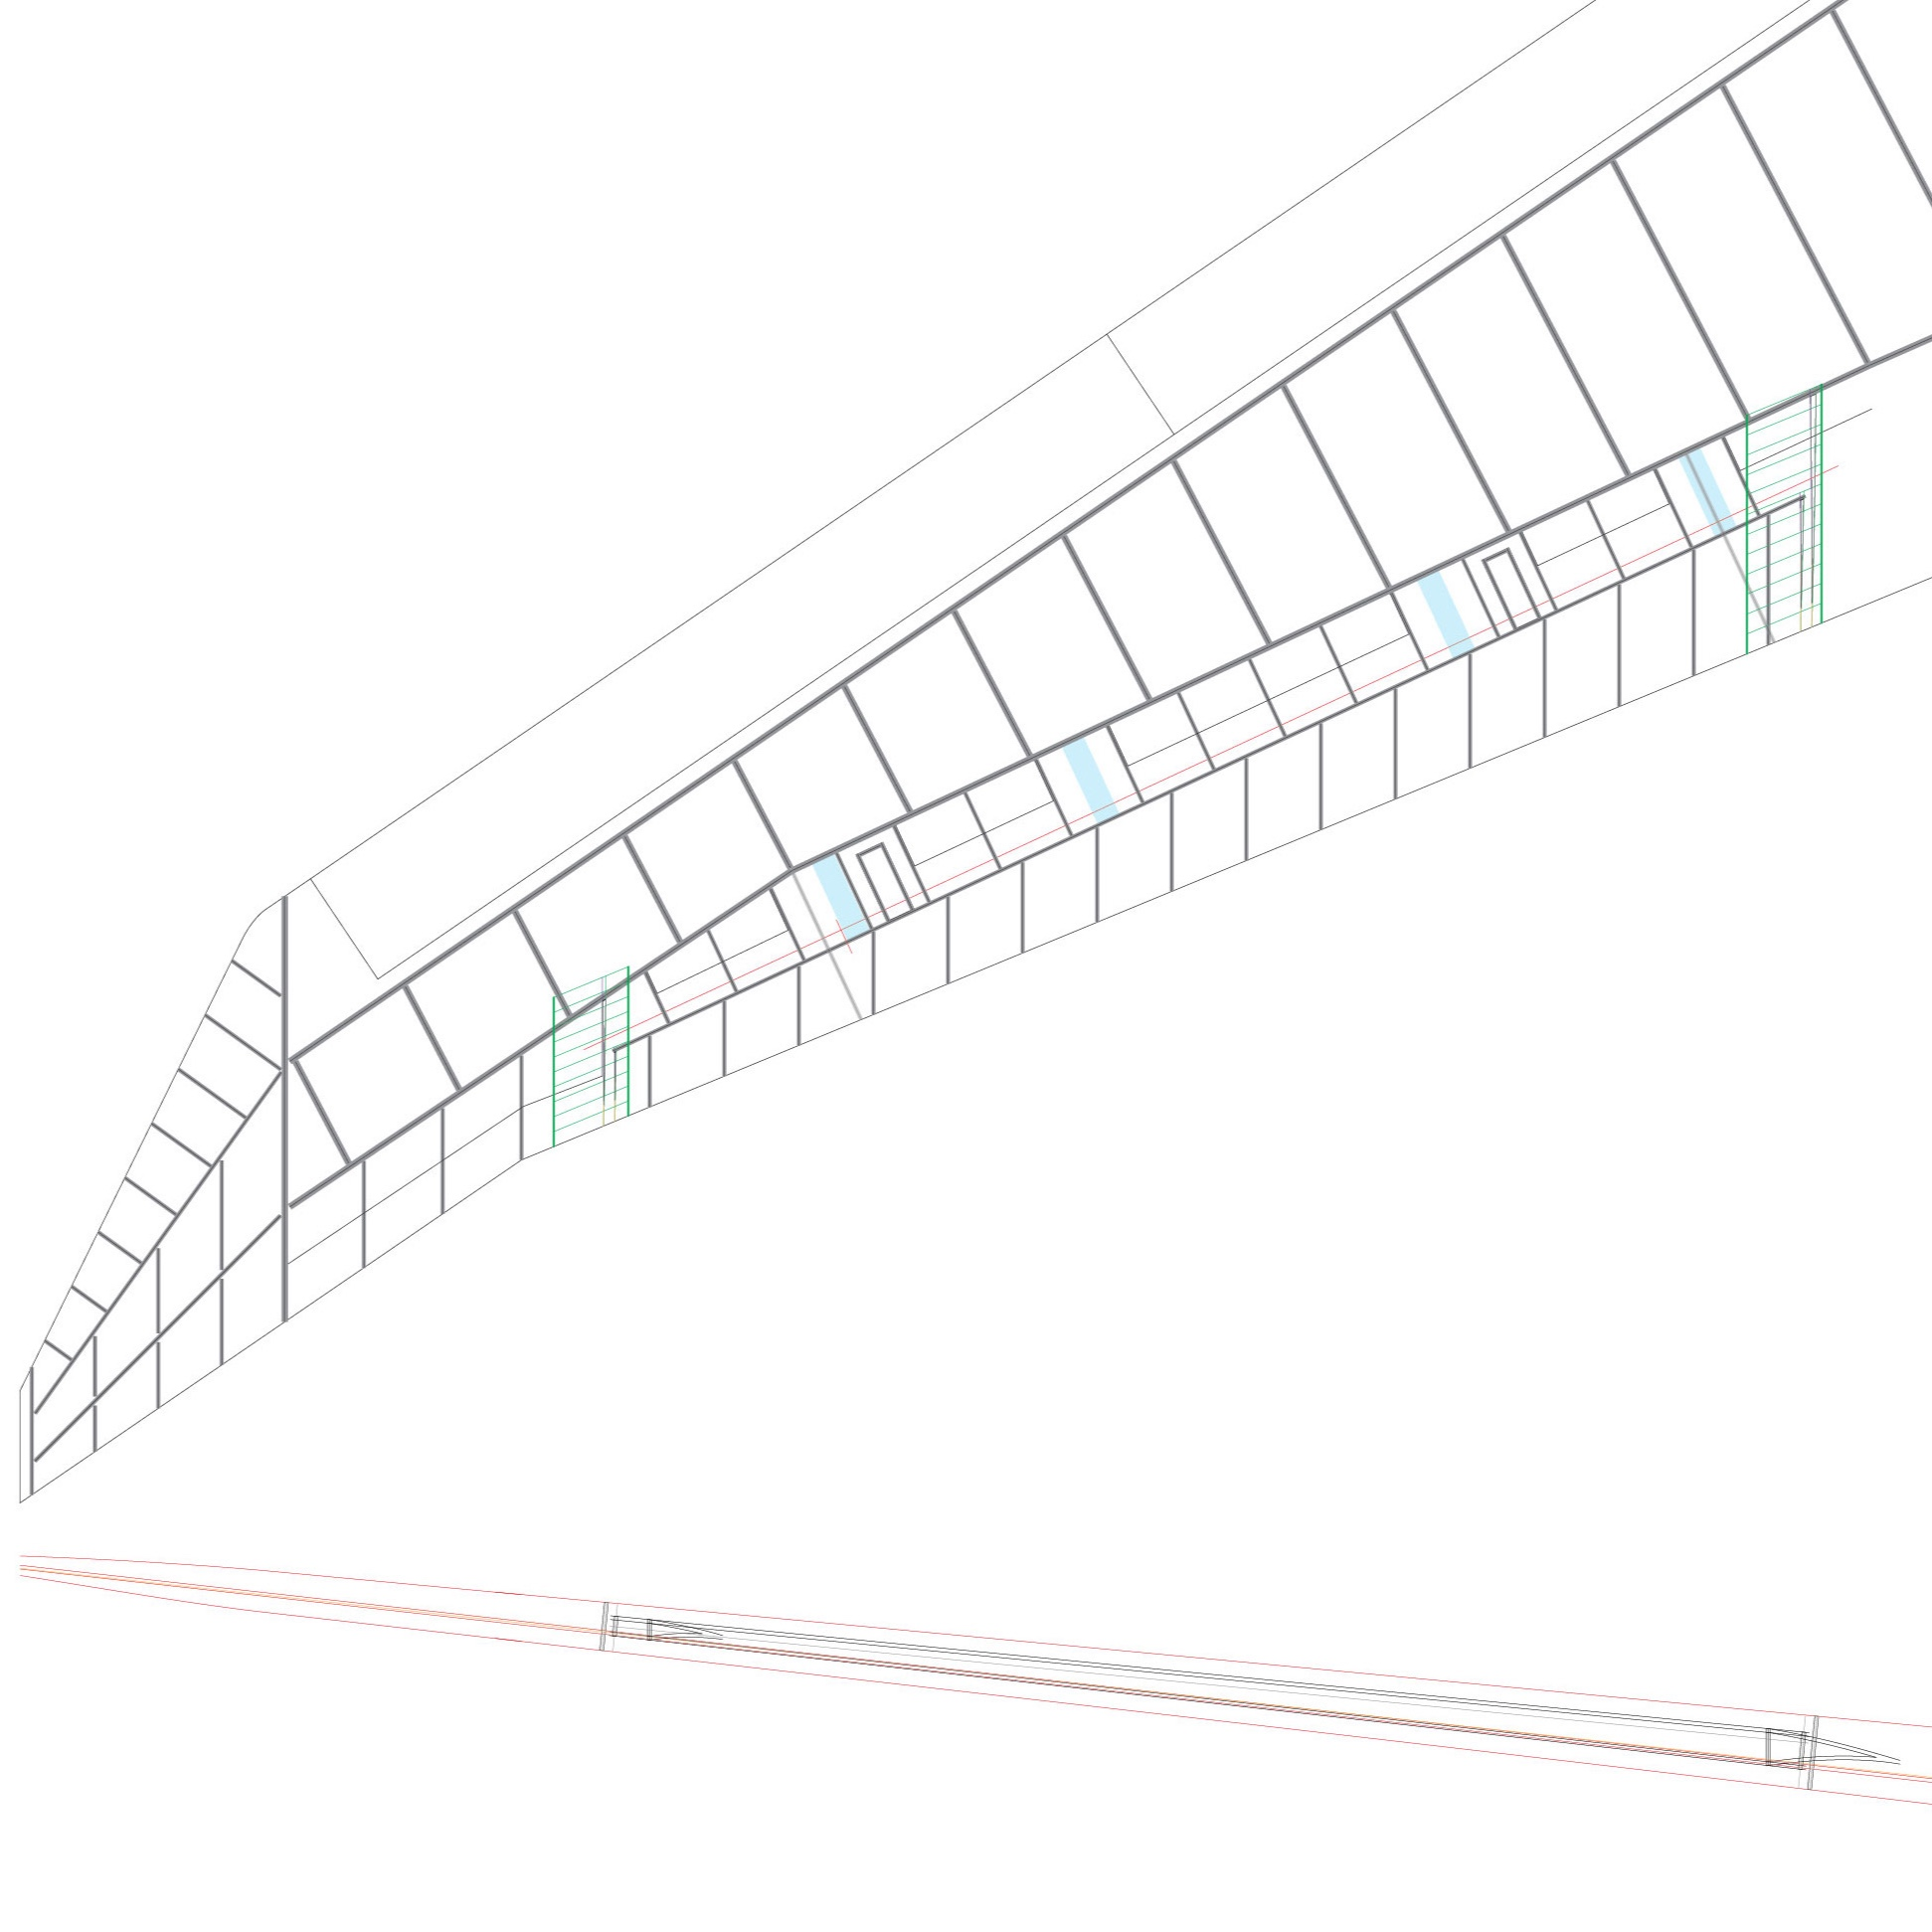 Wings+-+aileron+-+drawings+1.jpg